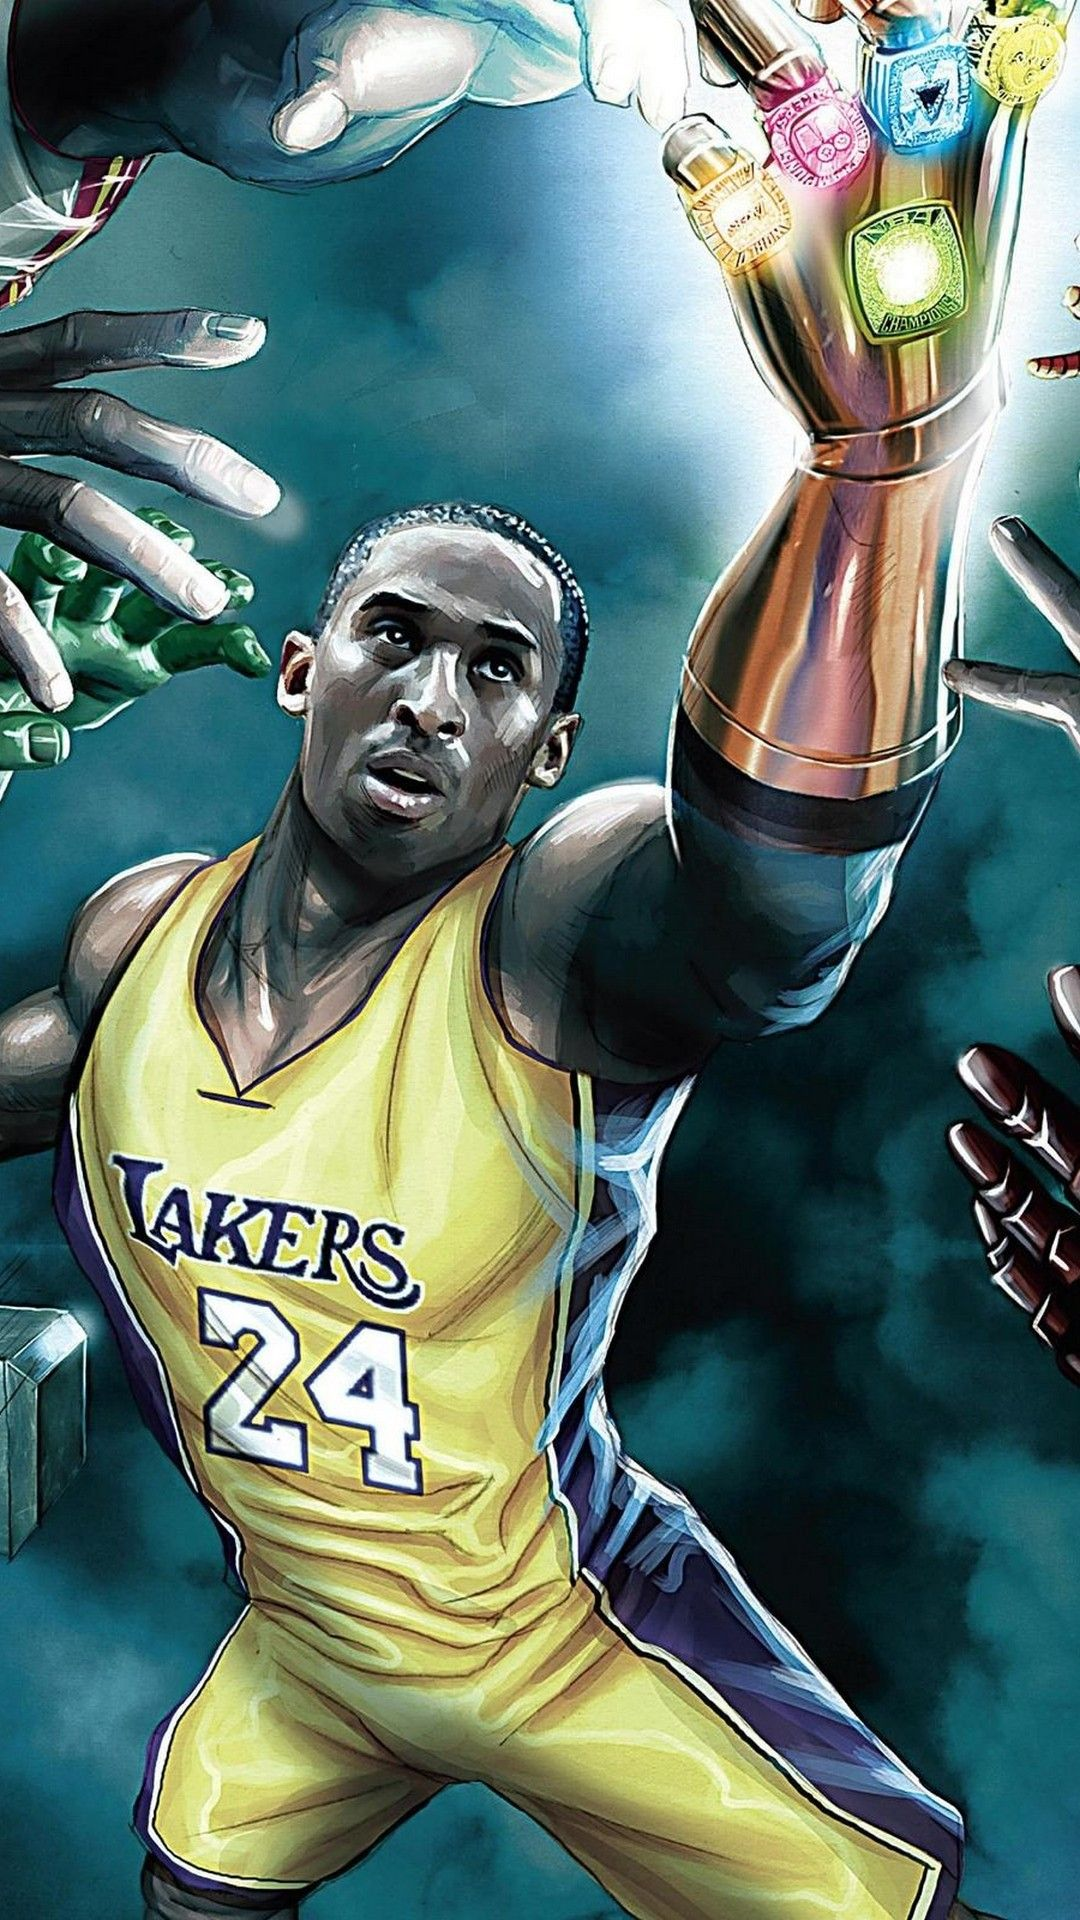 Wallpaper Nba Mobile 2021 Basketball Wallpaper Basketball Wallpaper Nba Wallpapers Kobe Bryant Wallpaper